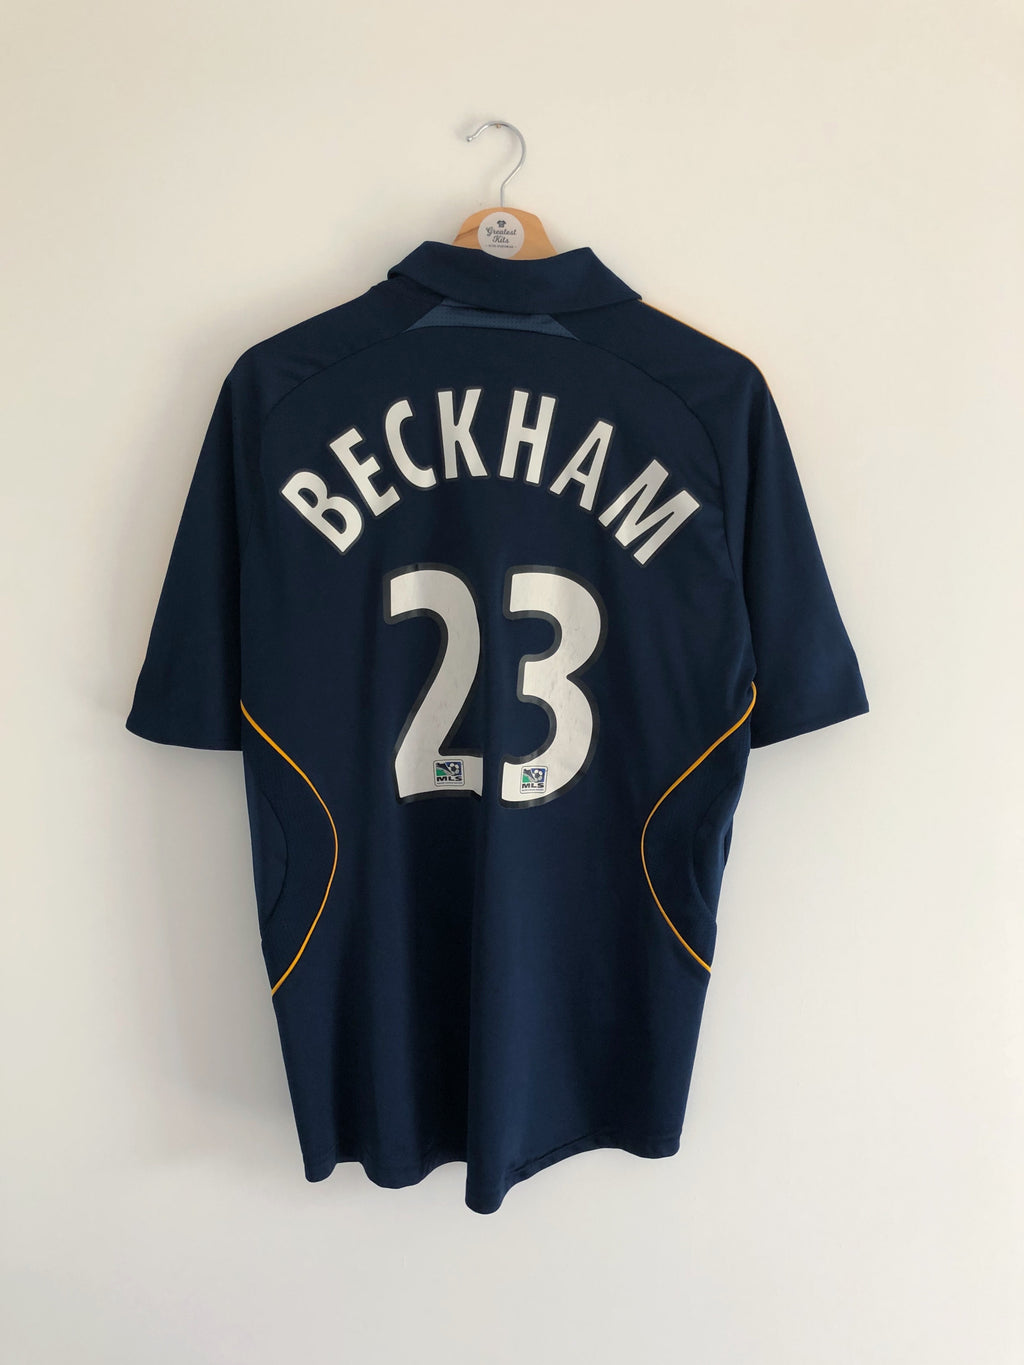 2007/08 LA Galaxy Away Shirt Beckham #23 (M) 8/10